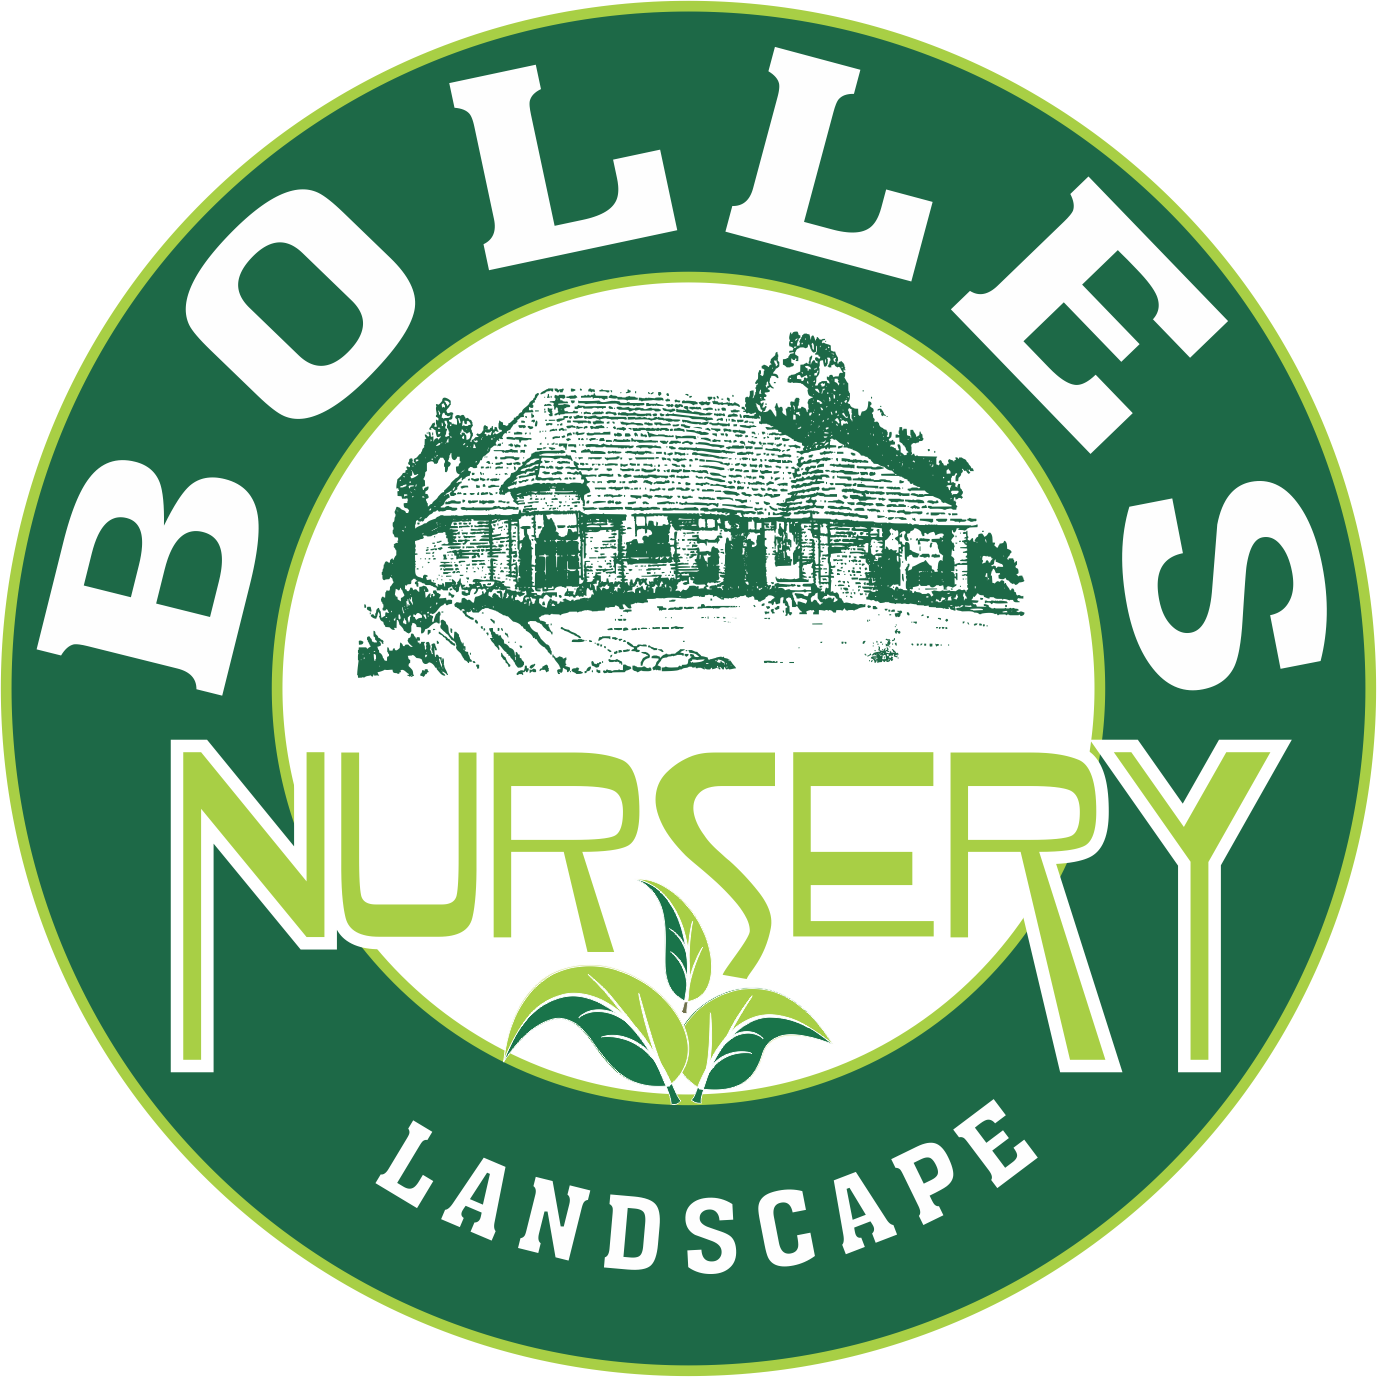 Materials for every landscaping project is available at Bolles Nursery